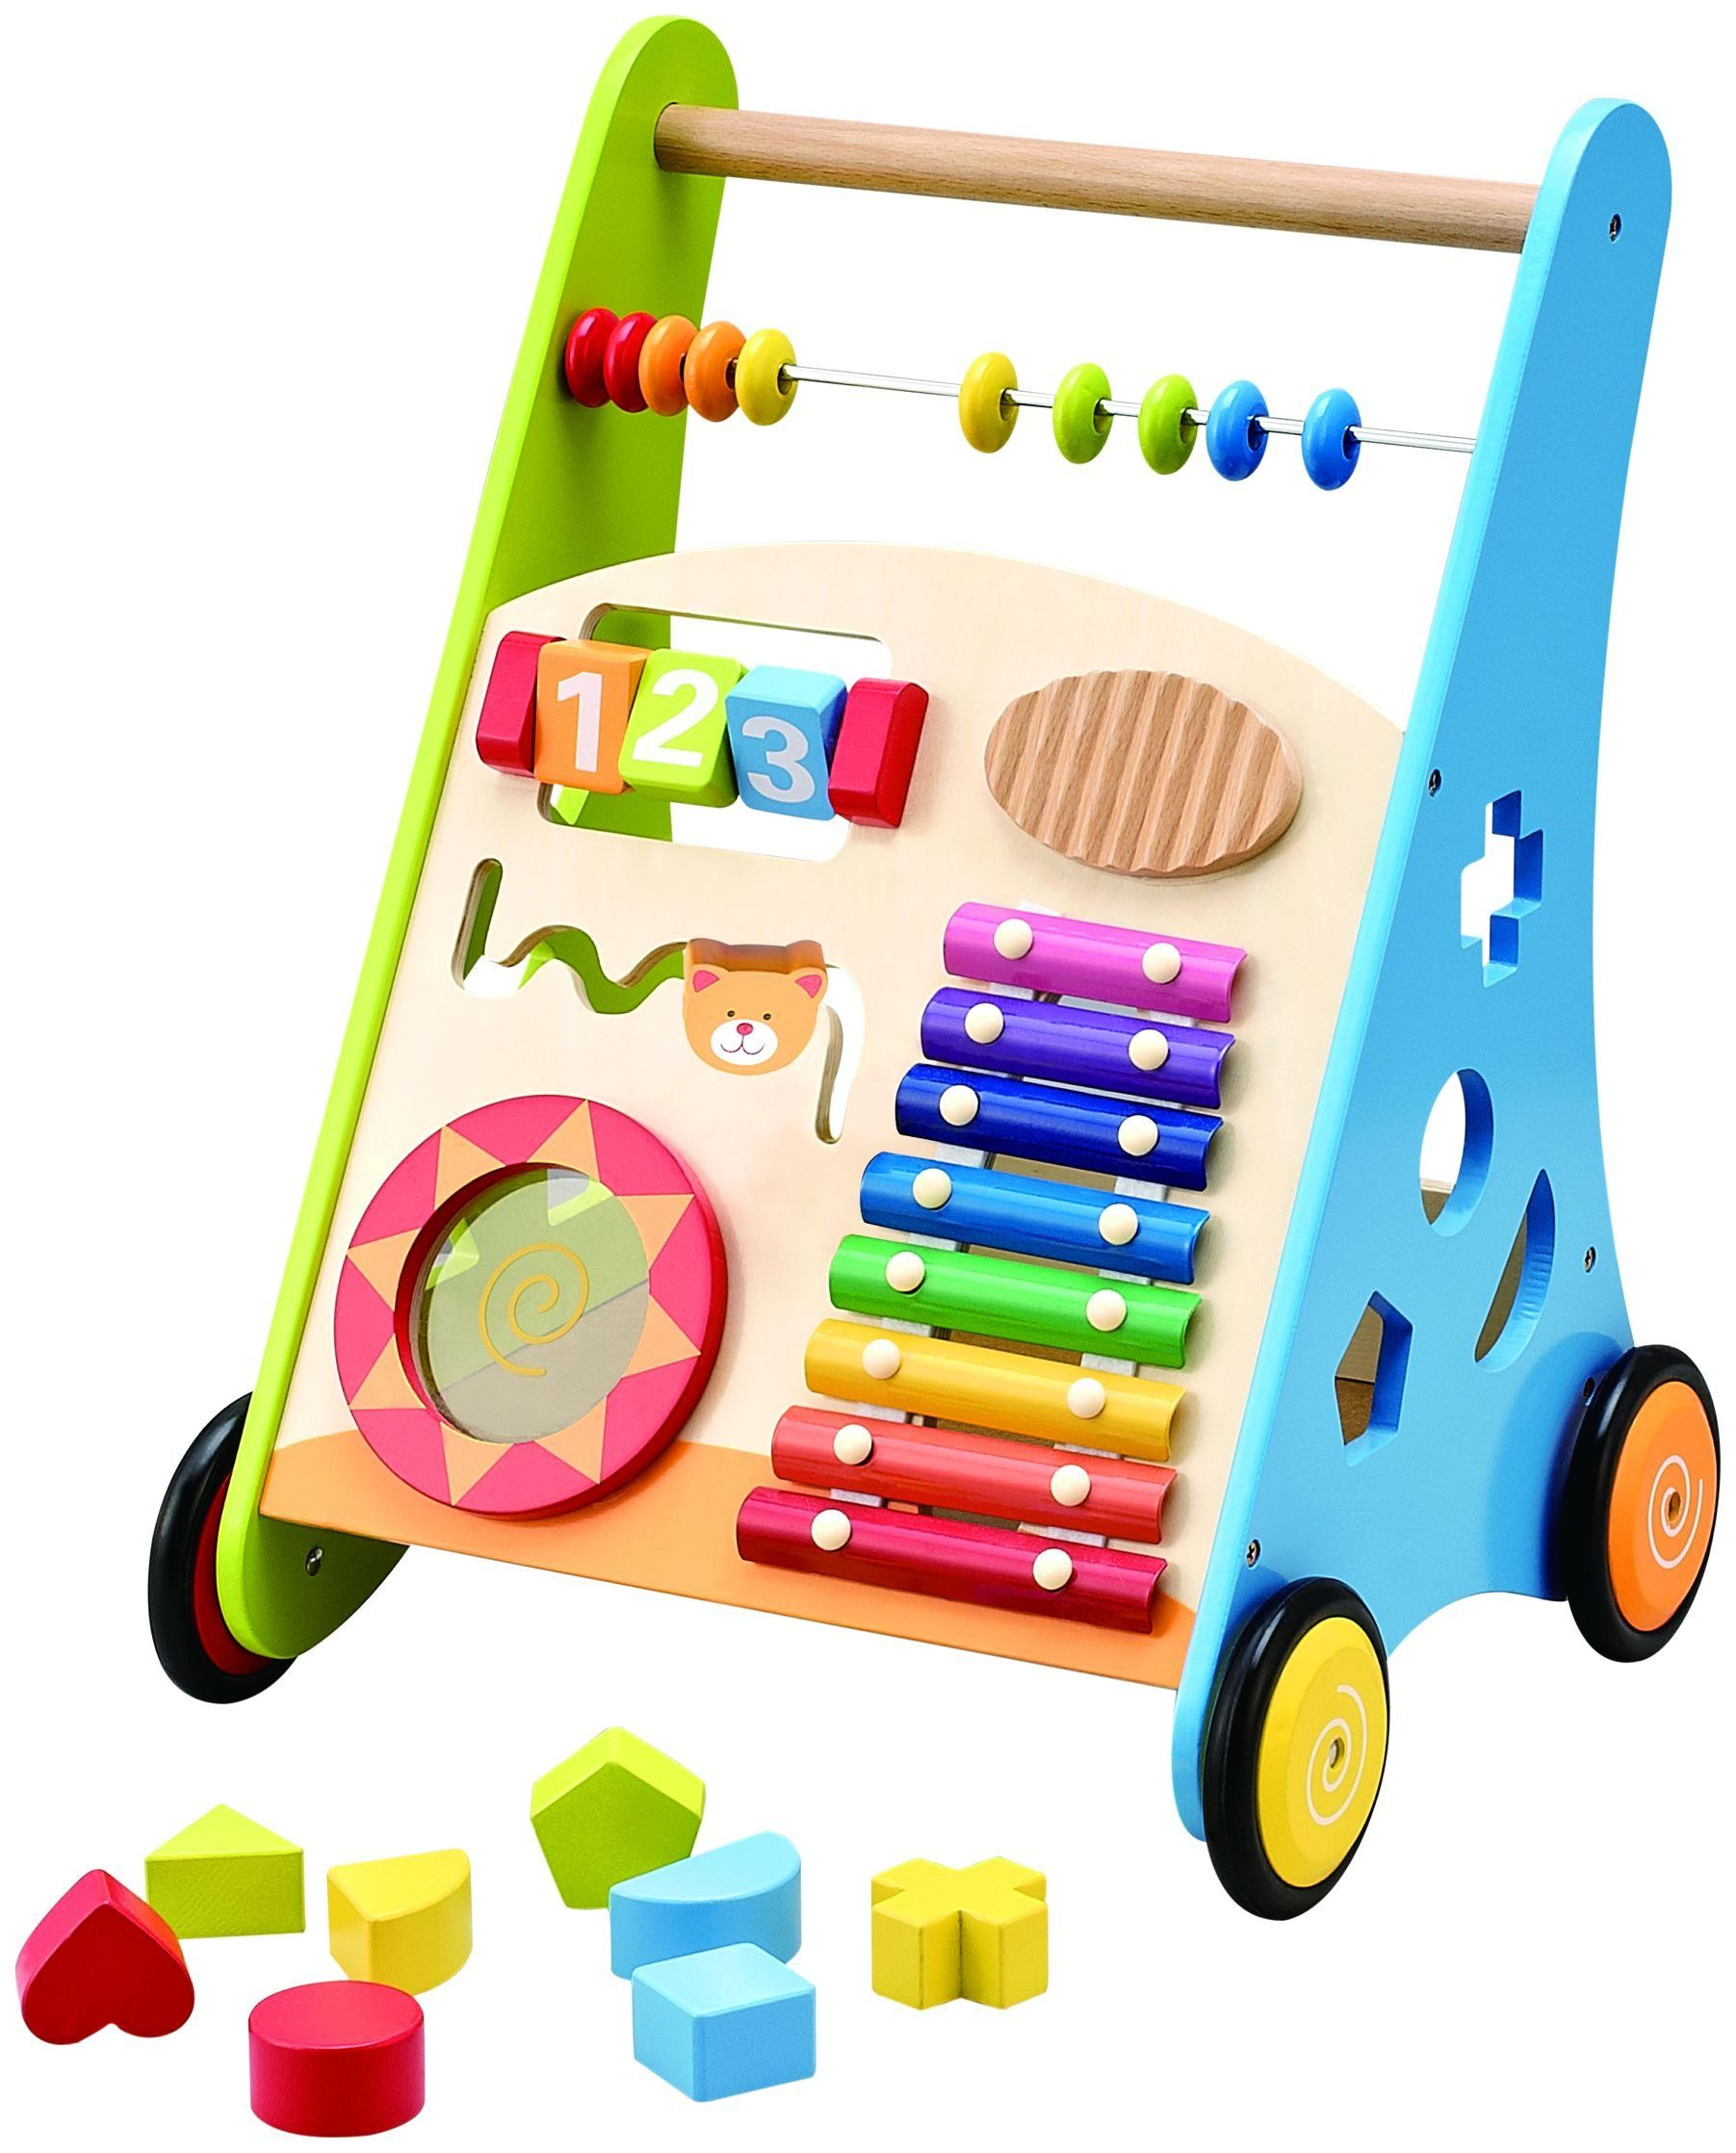 Wooden Toys Wooden Activity Baby Walker | Wooden toys, Push ...